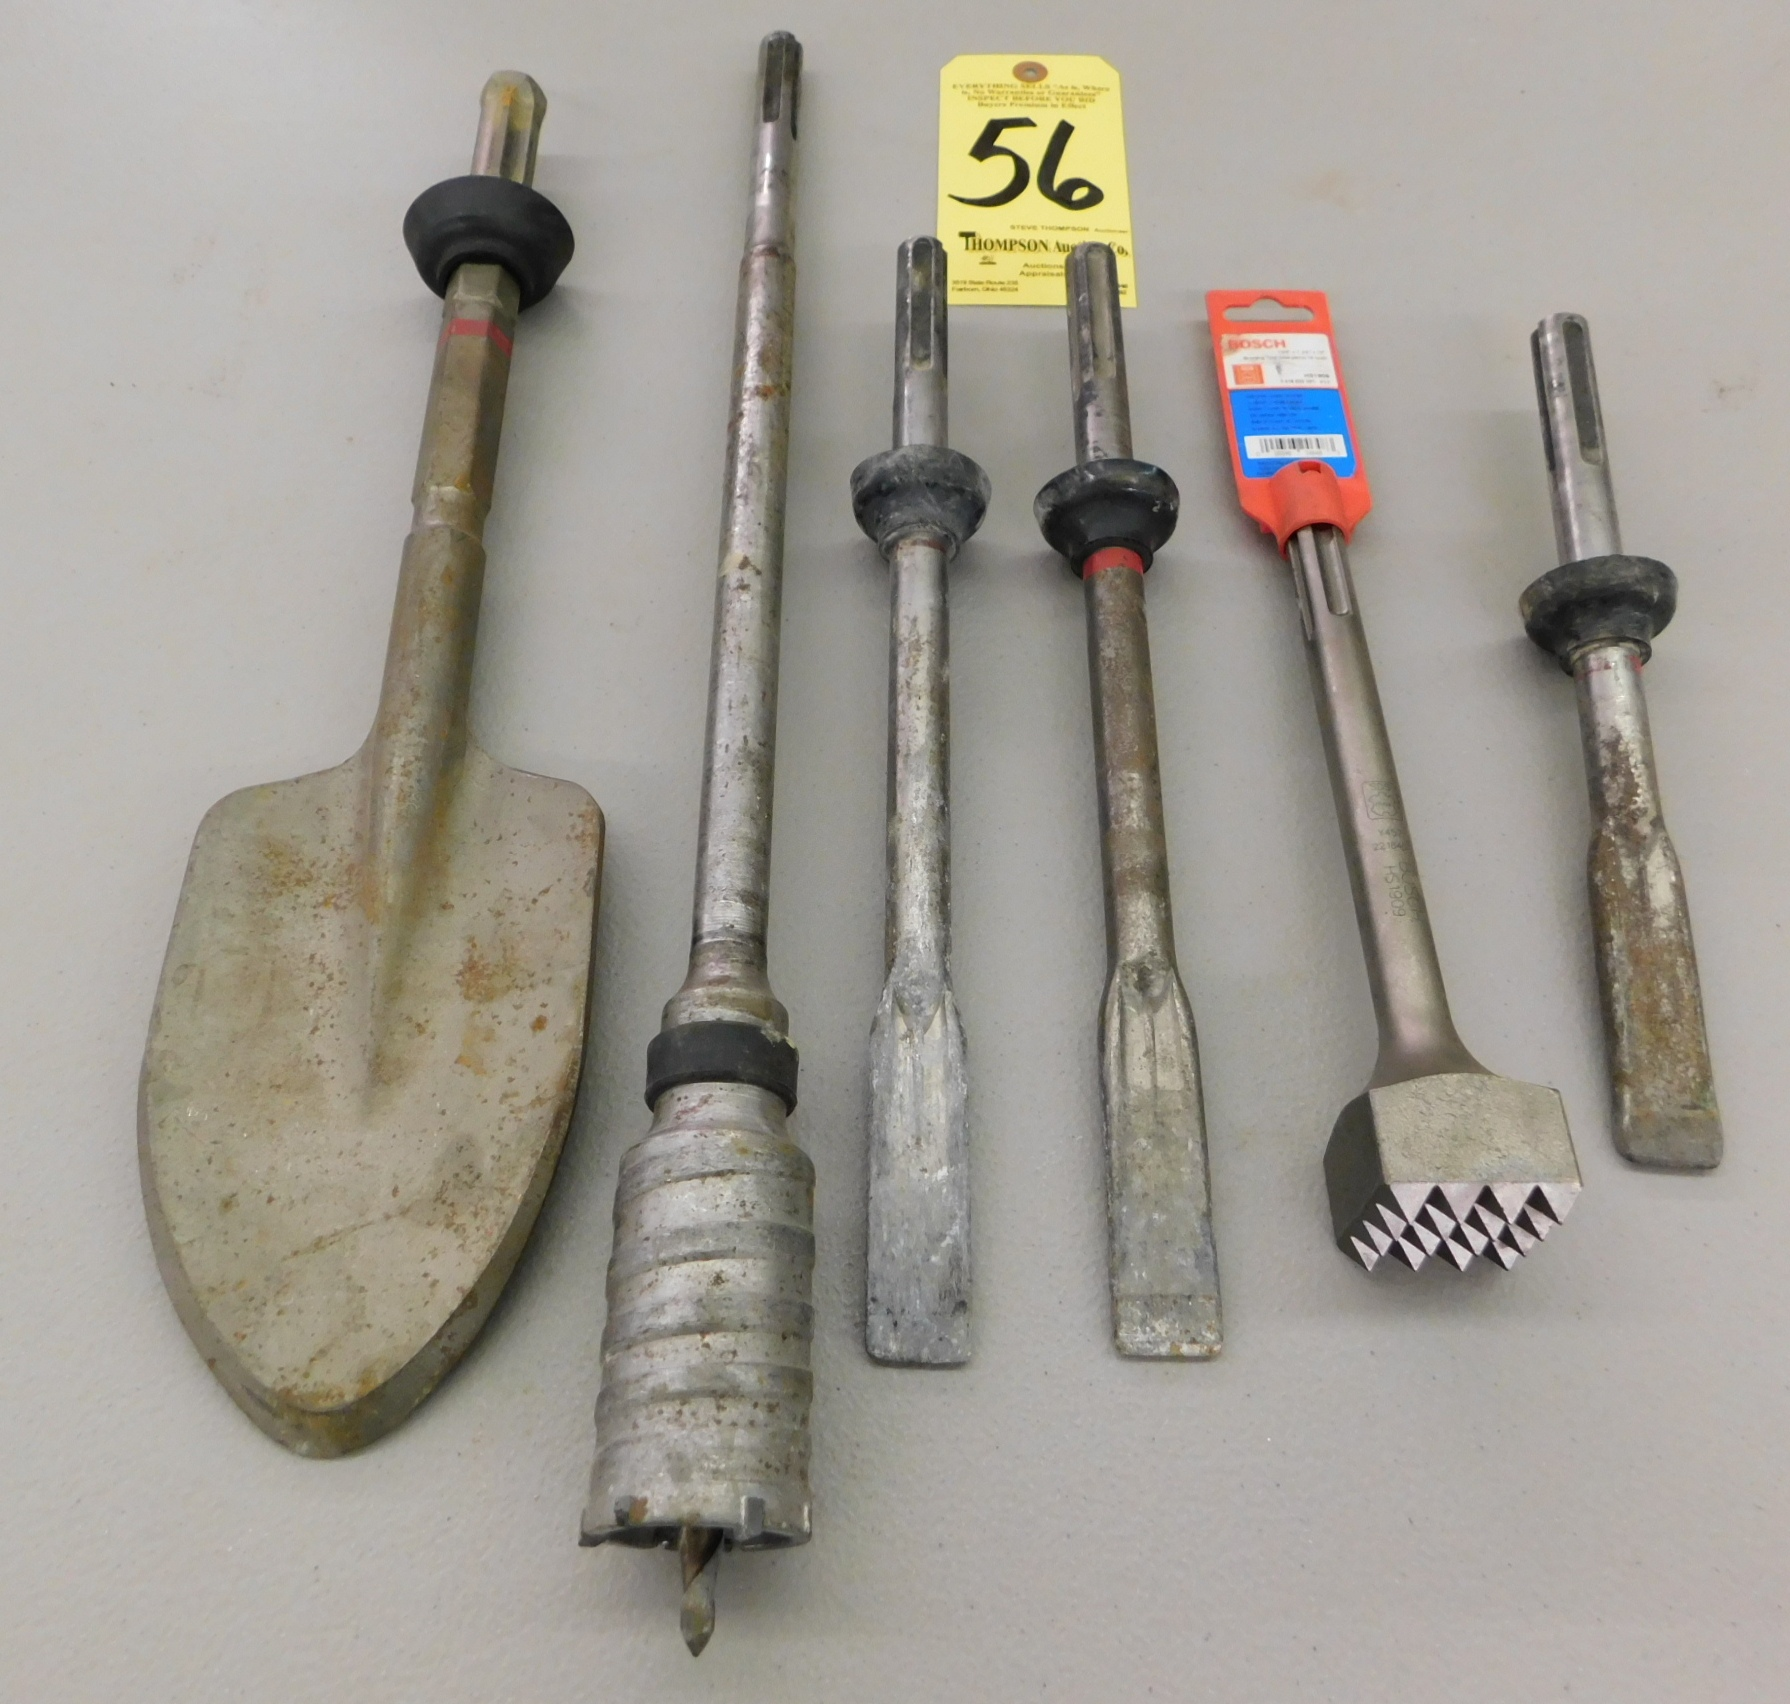 Rotary Hammer Chisels and Drills